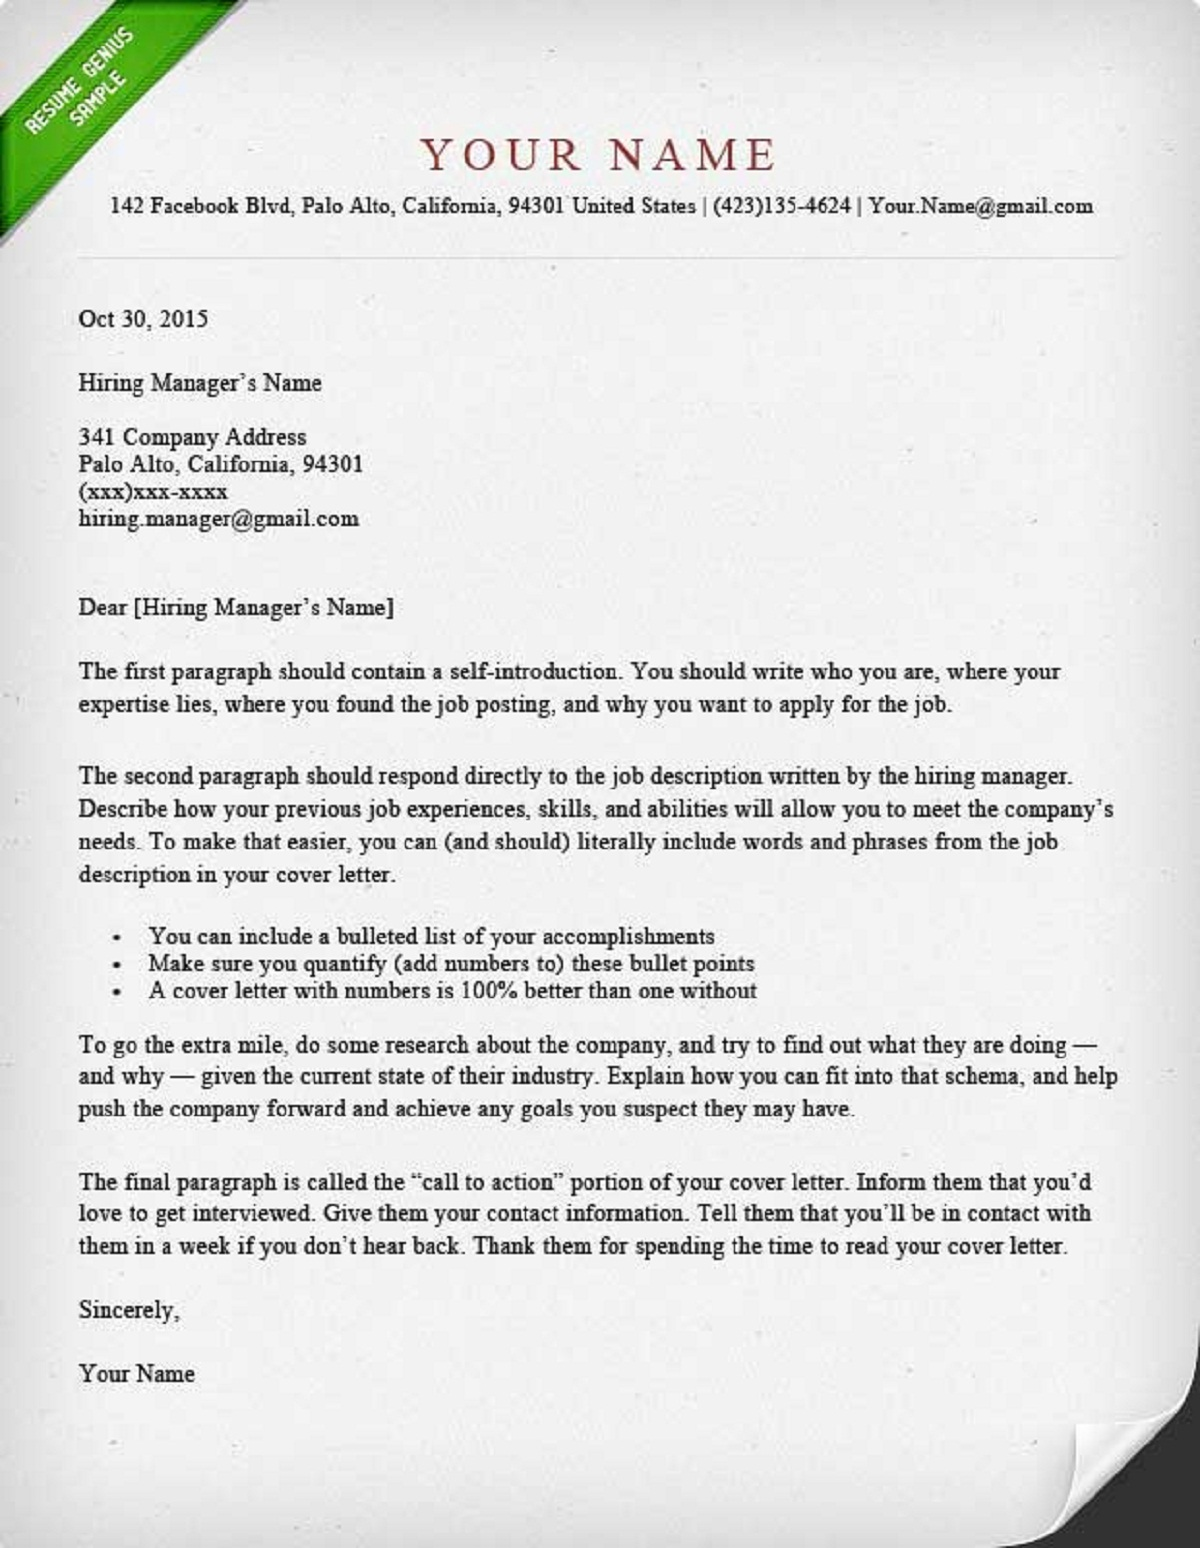 How to write a cover letter guide with sample how can done for How to writea cover letter